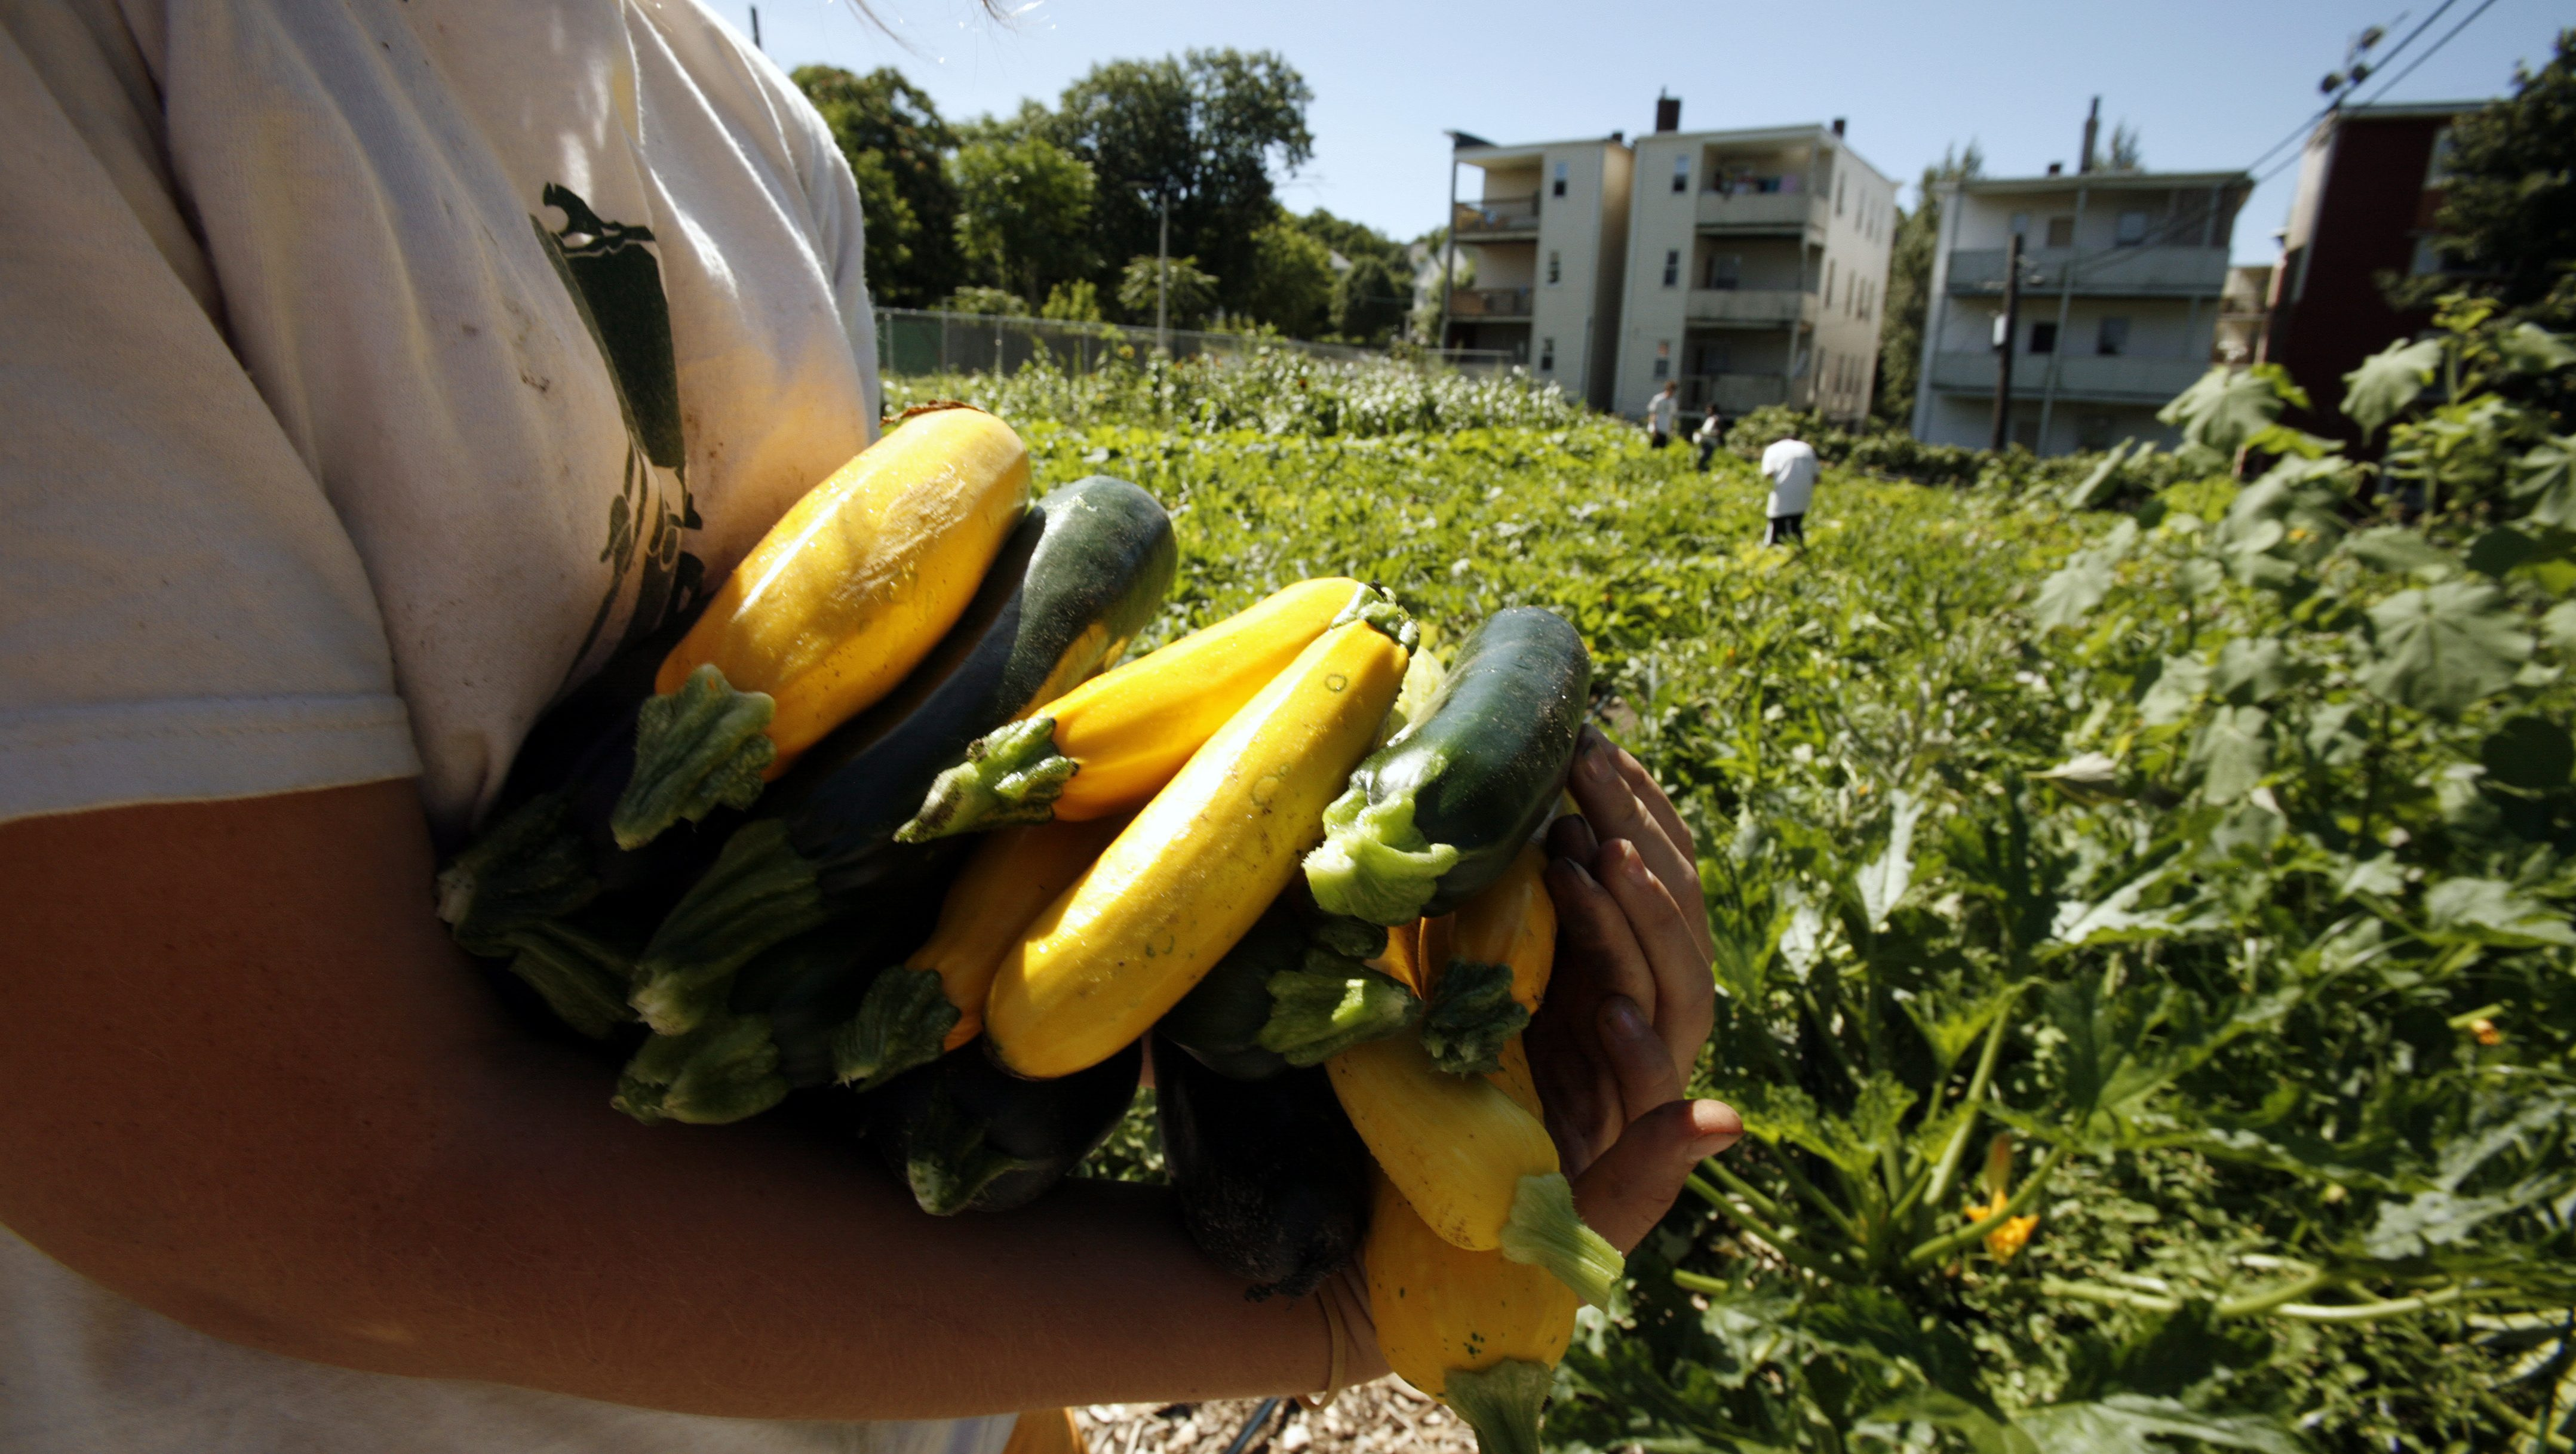 What to do with all that late summer zucchini: three super-simple ideas